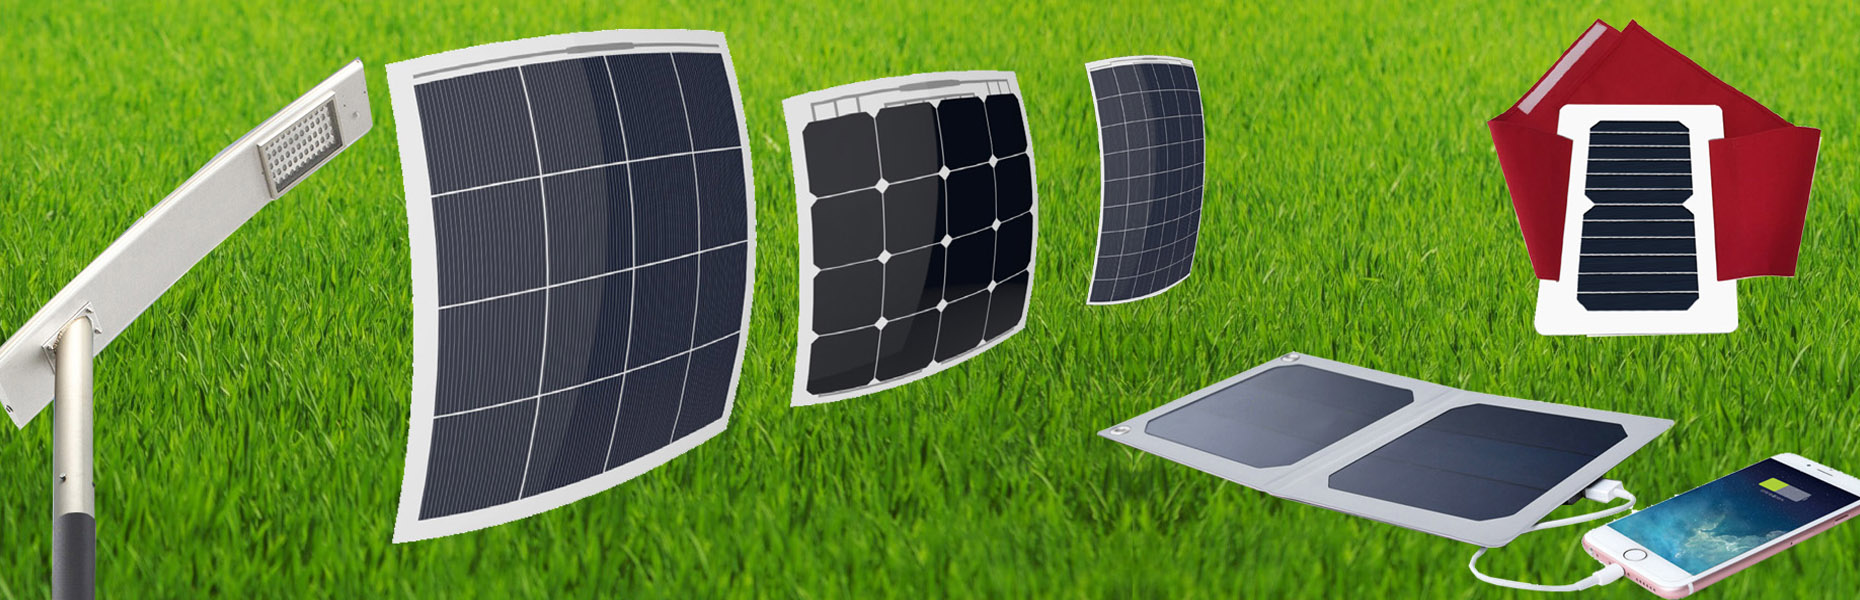 Solar_Panels_and_Accessories_dubai_uae